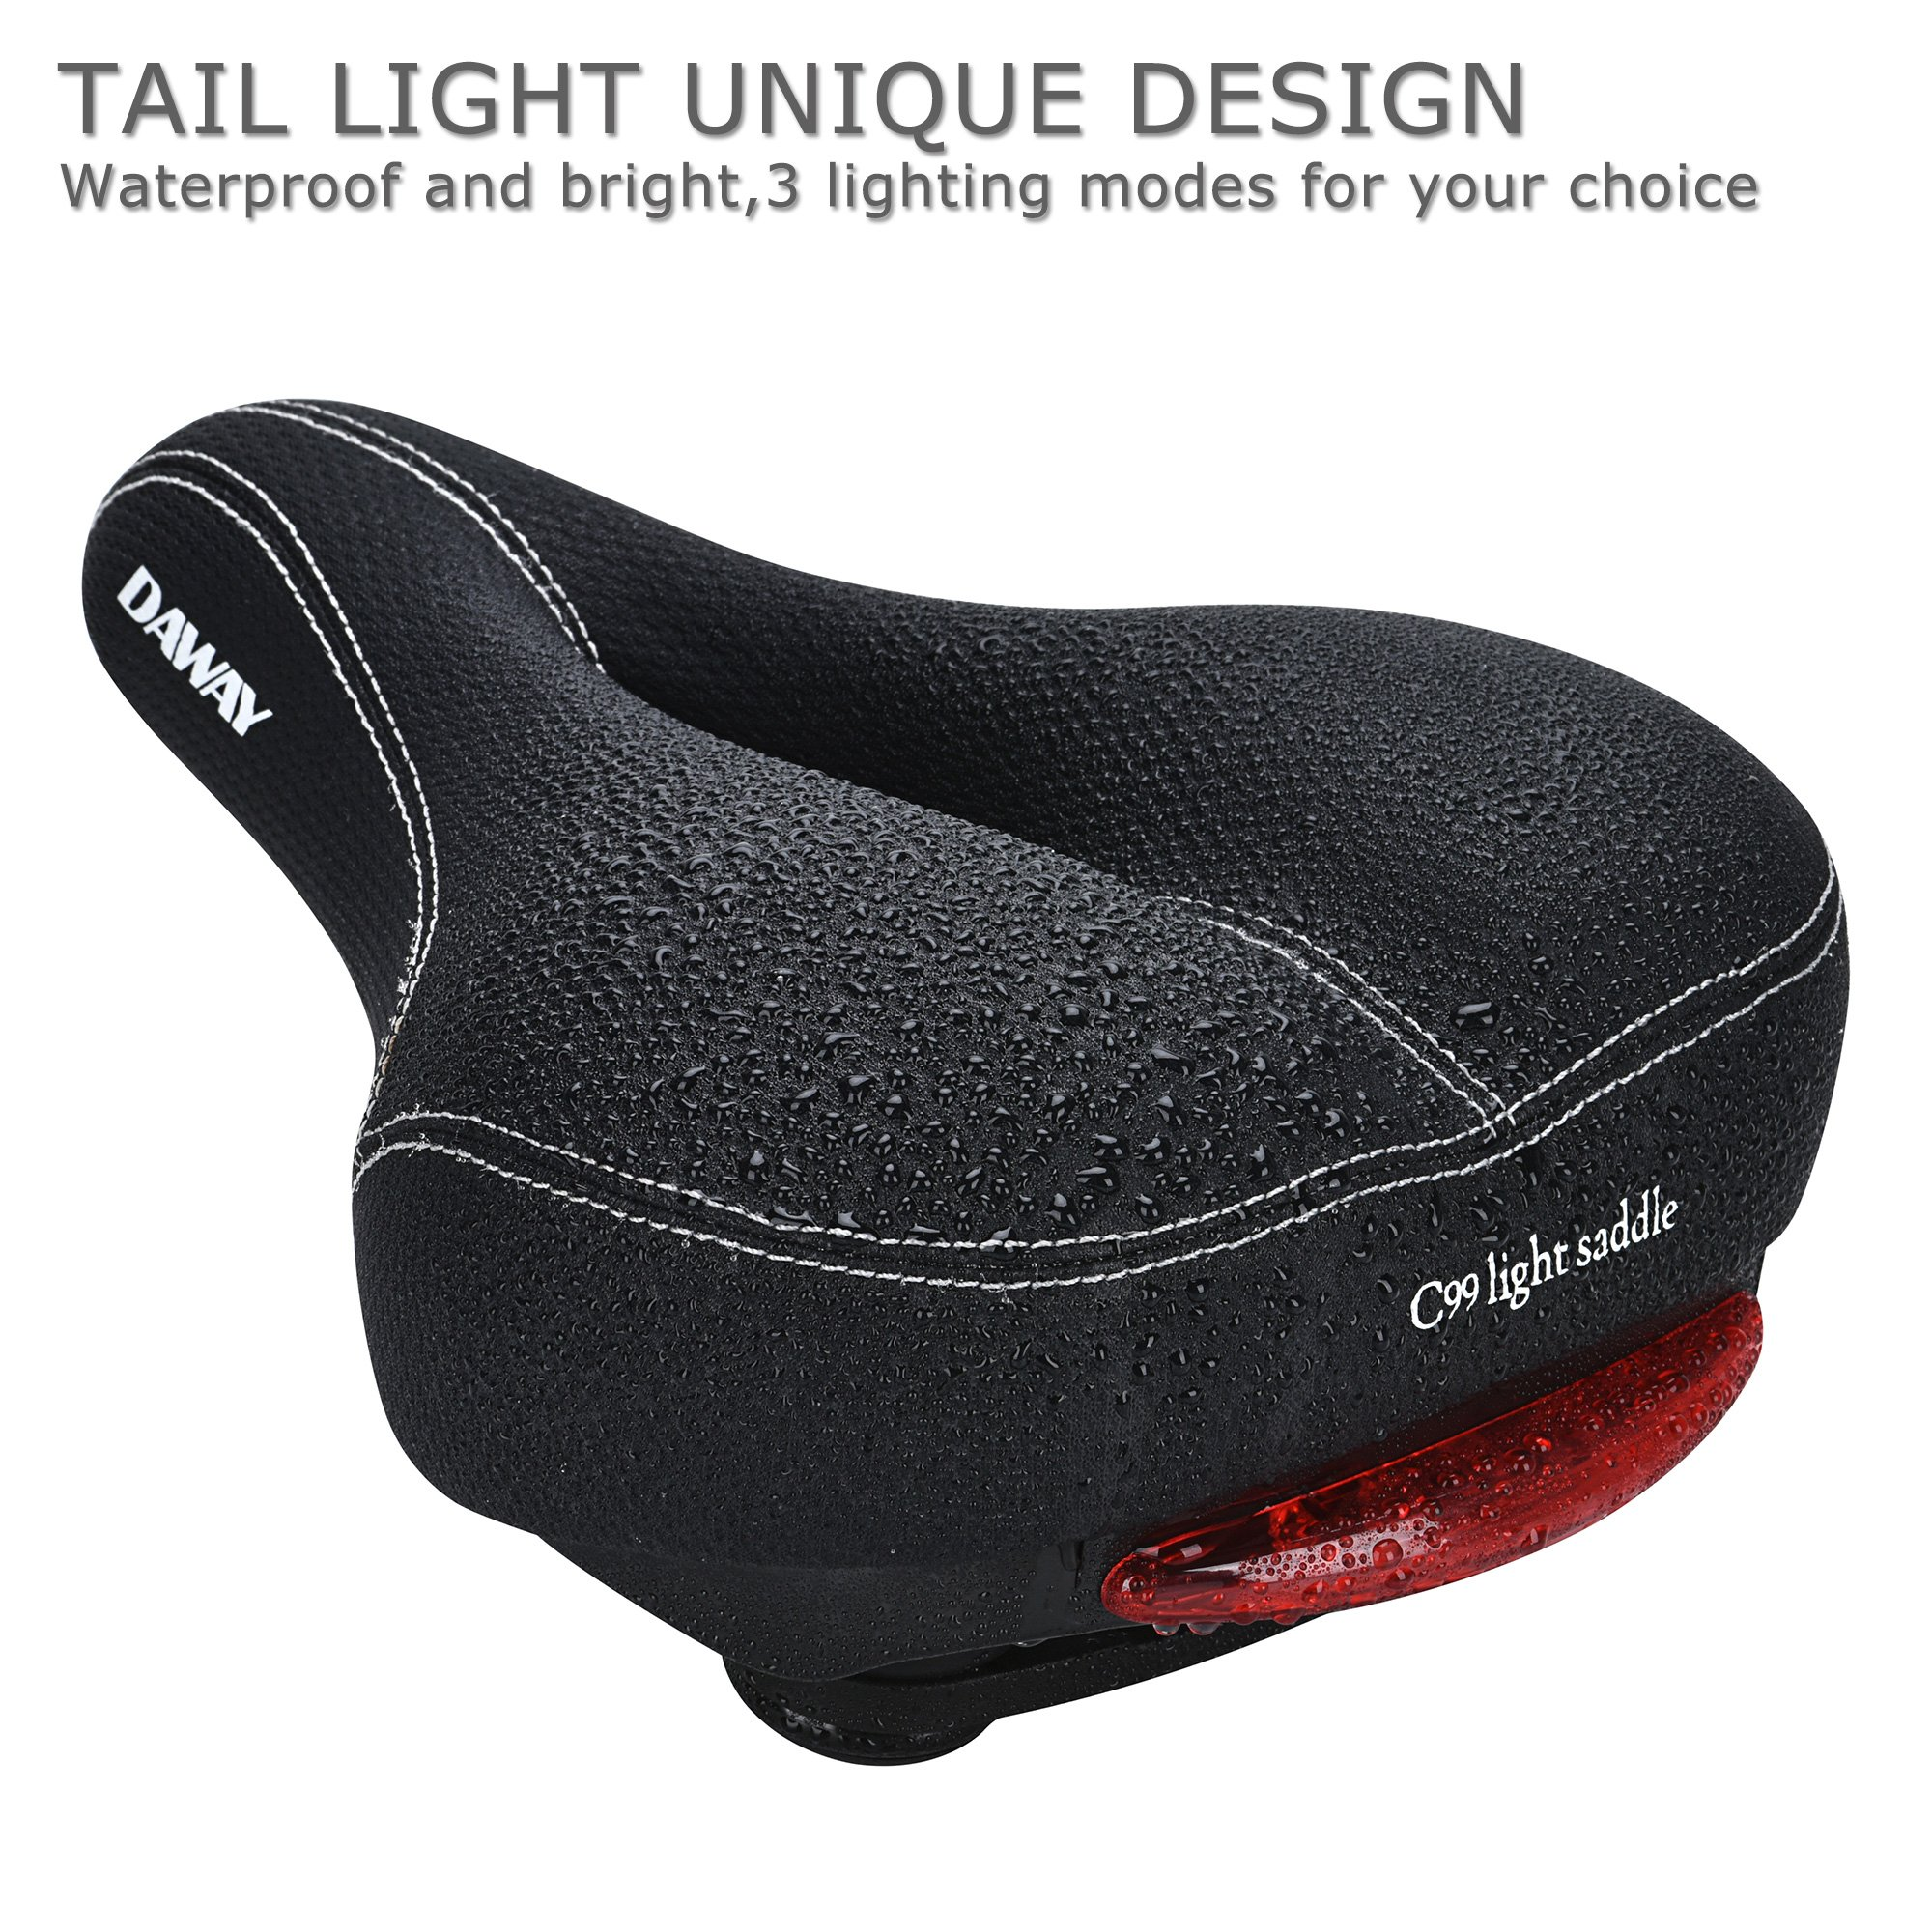 DAWAY Comfortable Men Women Bike Seat C99 Memory Foam Padded Leather Wide Bicycle Saddle Cushion with Taillight, Waterproof, Dual Spring Designed, Soft, Breathable, Fit Most Bikes, 1 Year Warranty by DAWAY (Image #2)